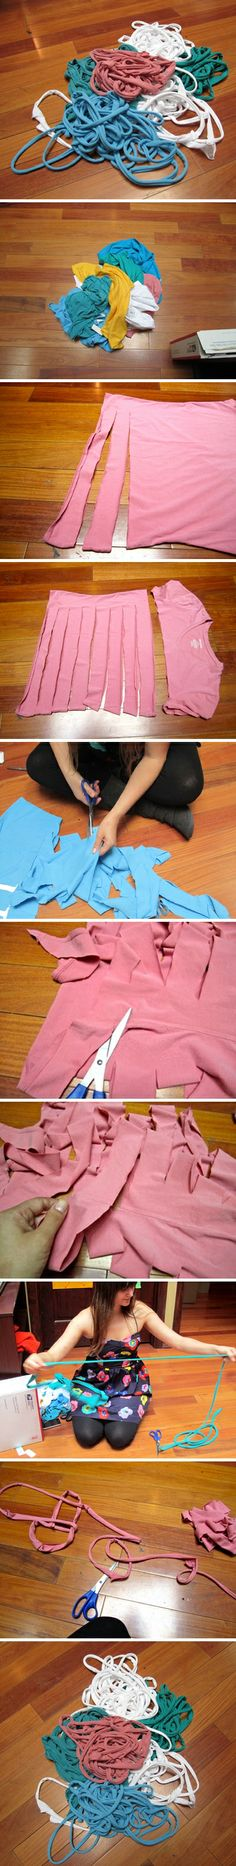 How to make yarn with used t shirts step by step DIY tutorial instructions How to make yarn with used t shirts step by step DIY tutorial ins...